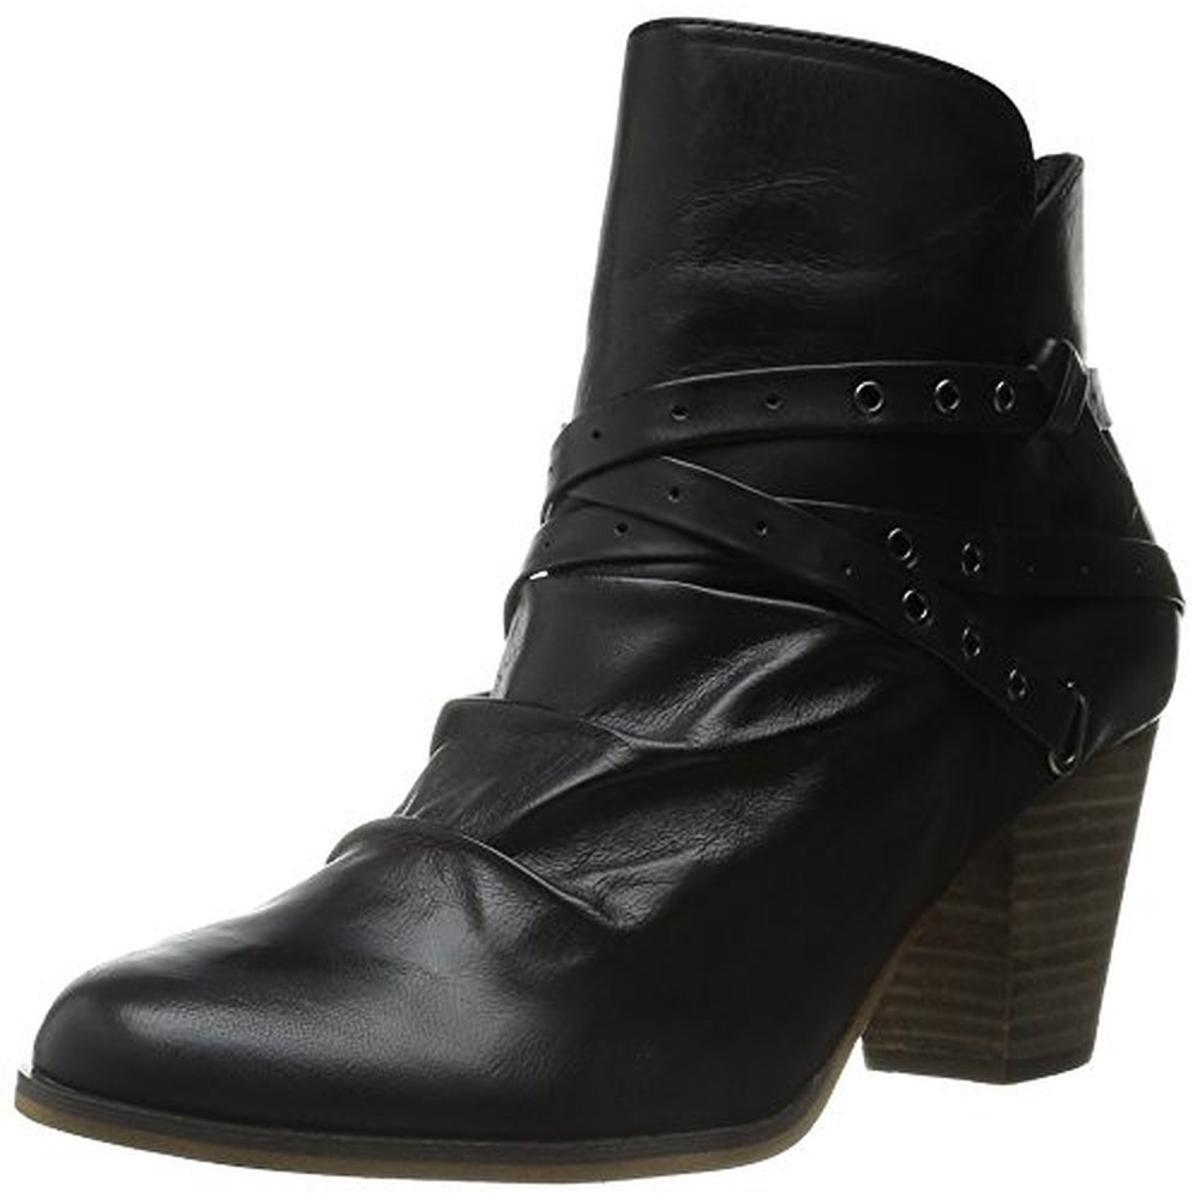 Bella Vita Womens Kiki Leather Stacked Ankle Boots by Bella Vita